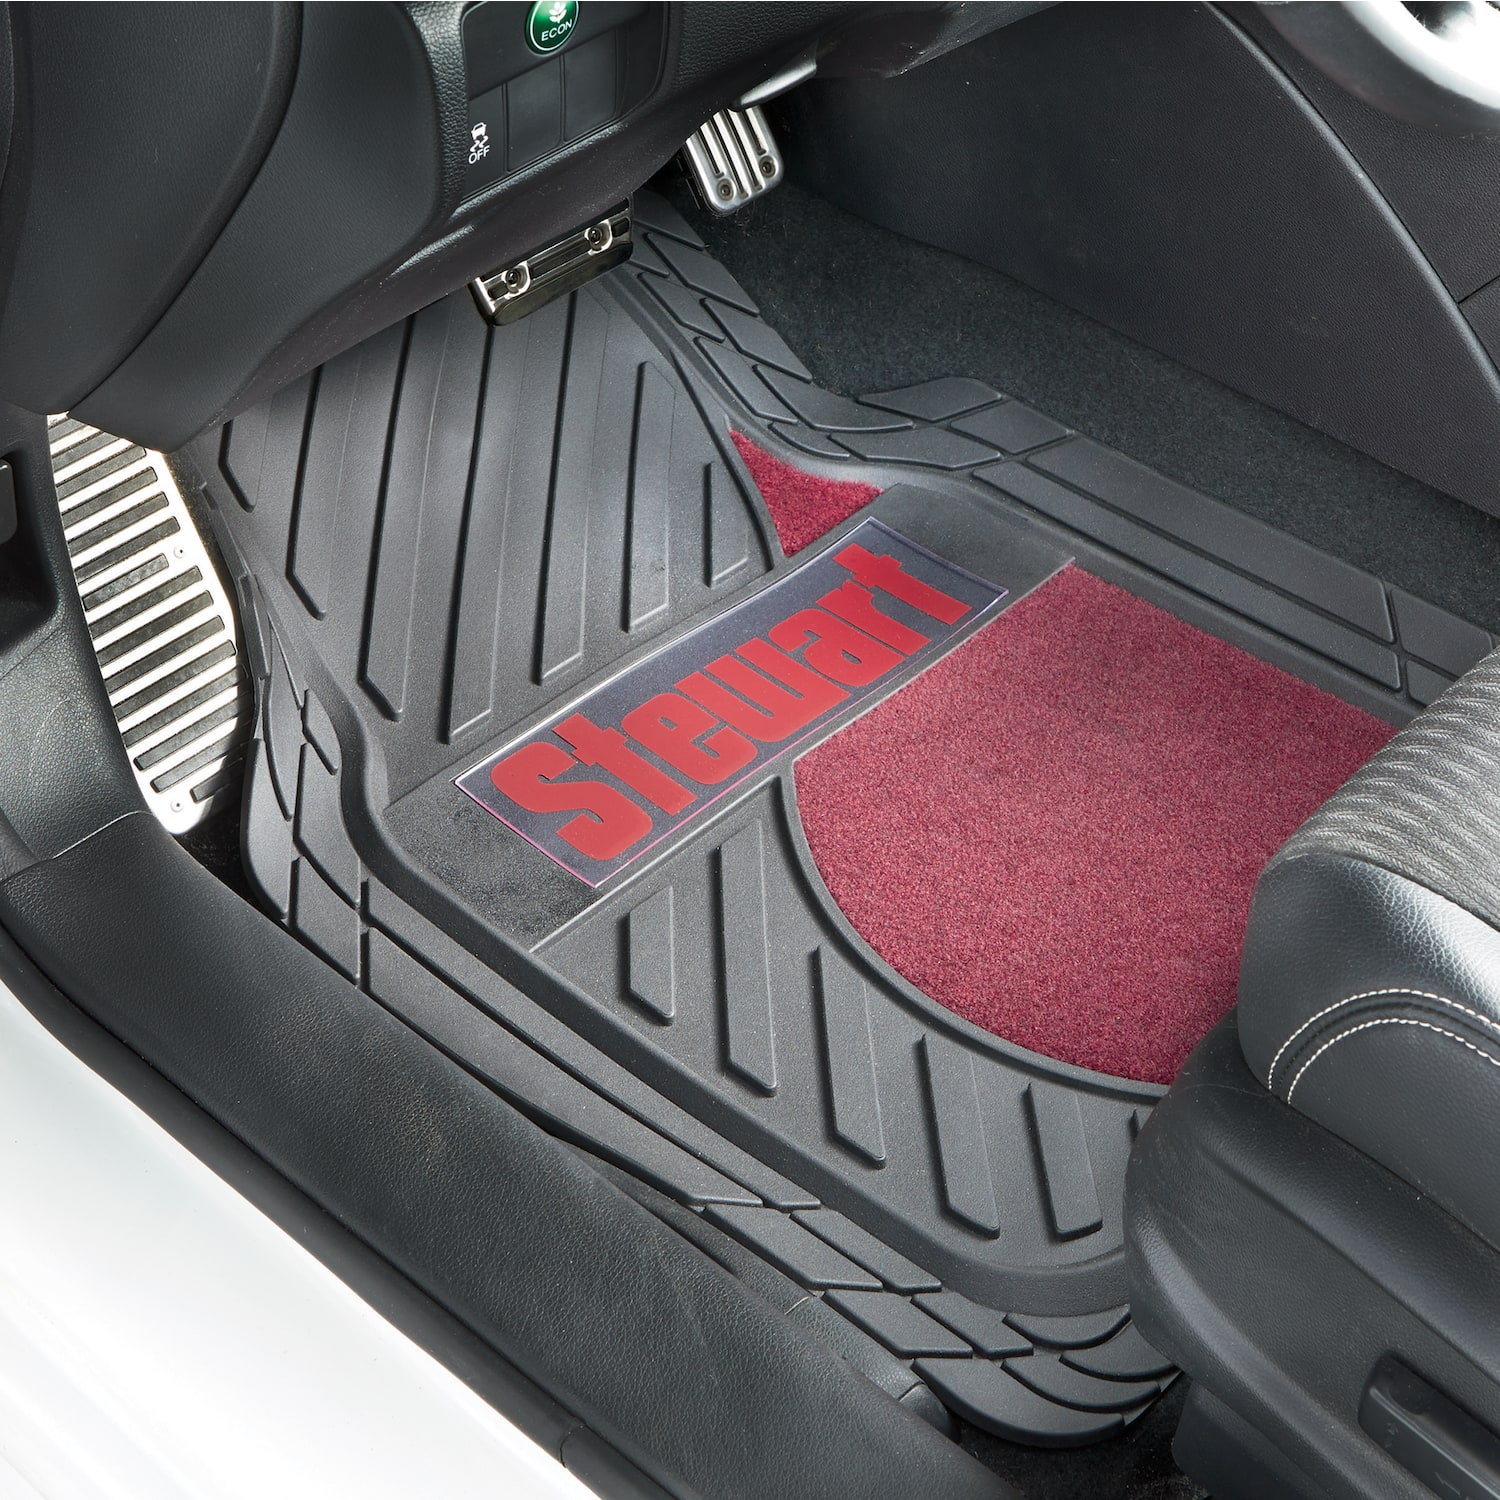 5 Things To Consider Before Buying New Floor Mats